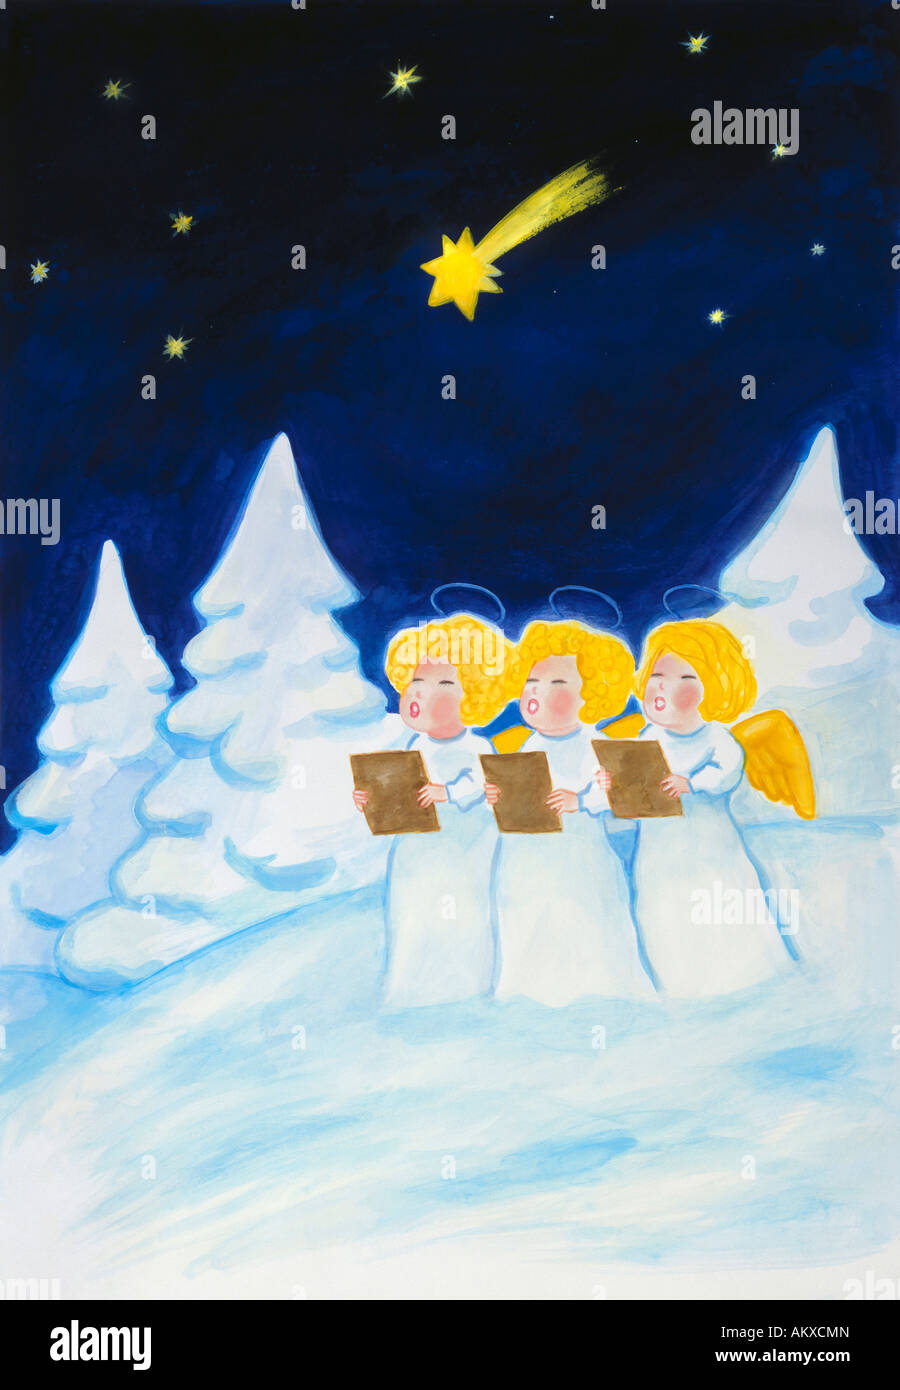 Angels' choir in a snowy forest, illustration - Stock Image